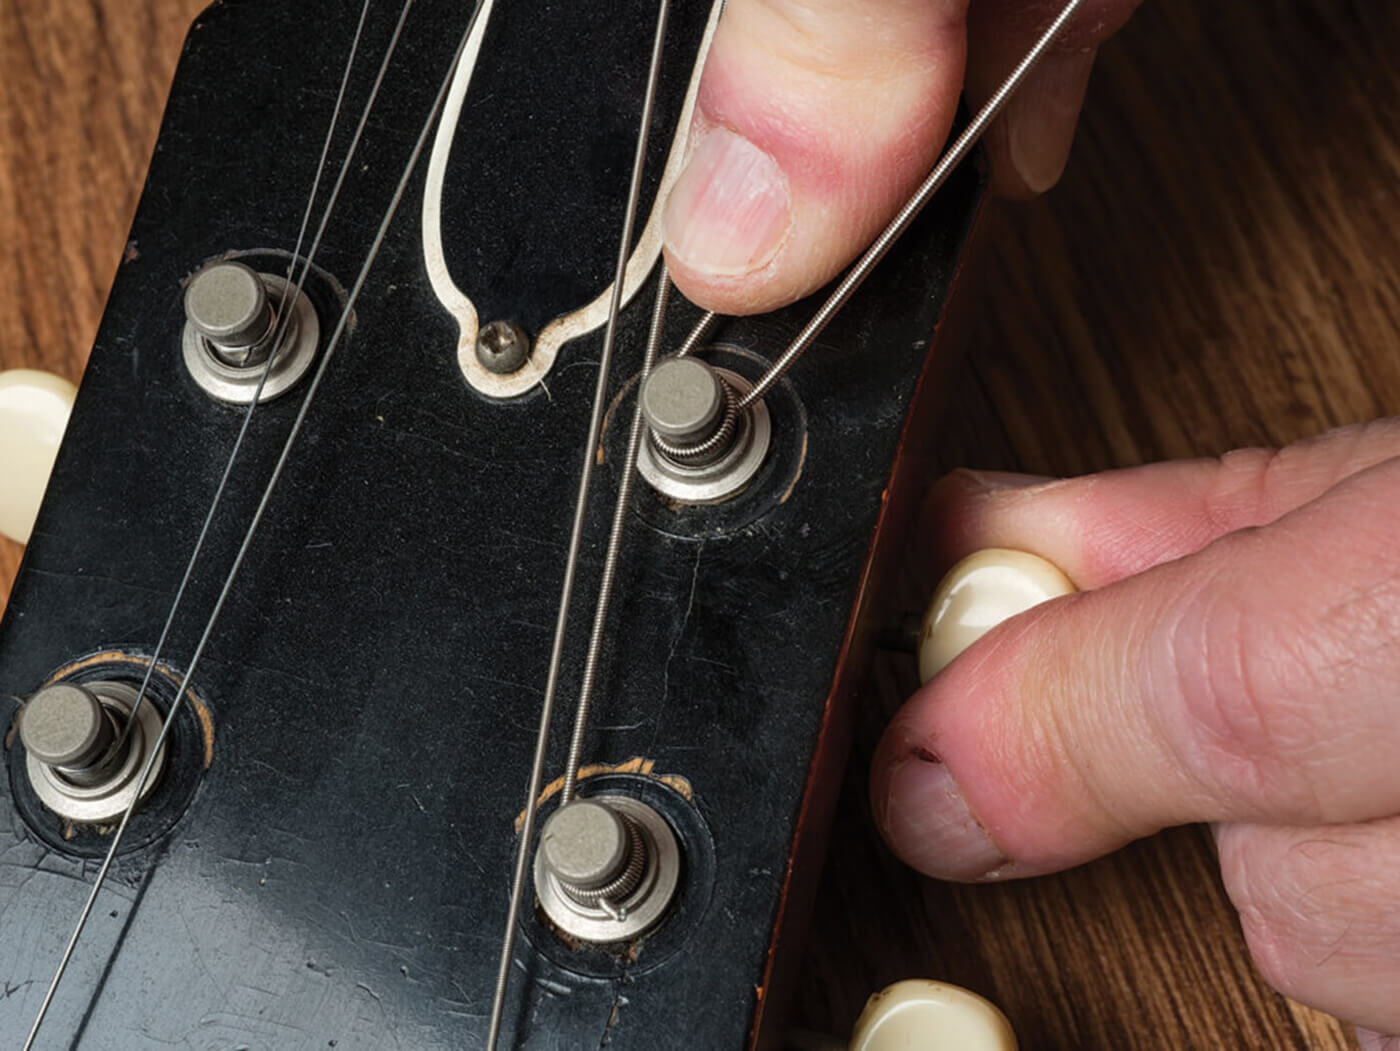 Restring bigsby tuning machines